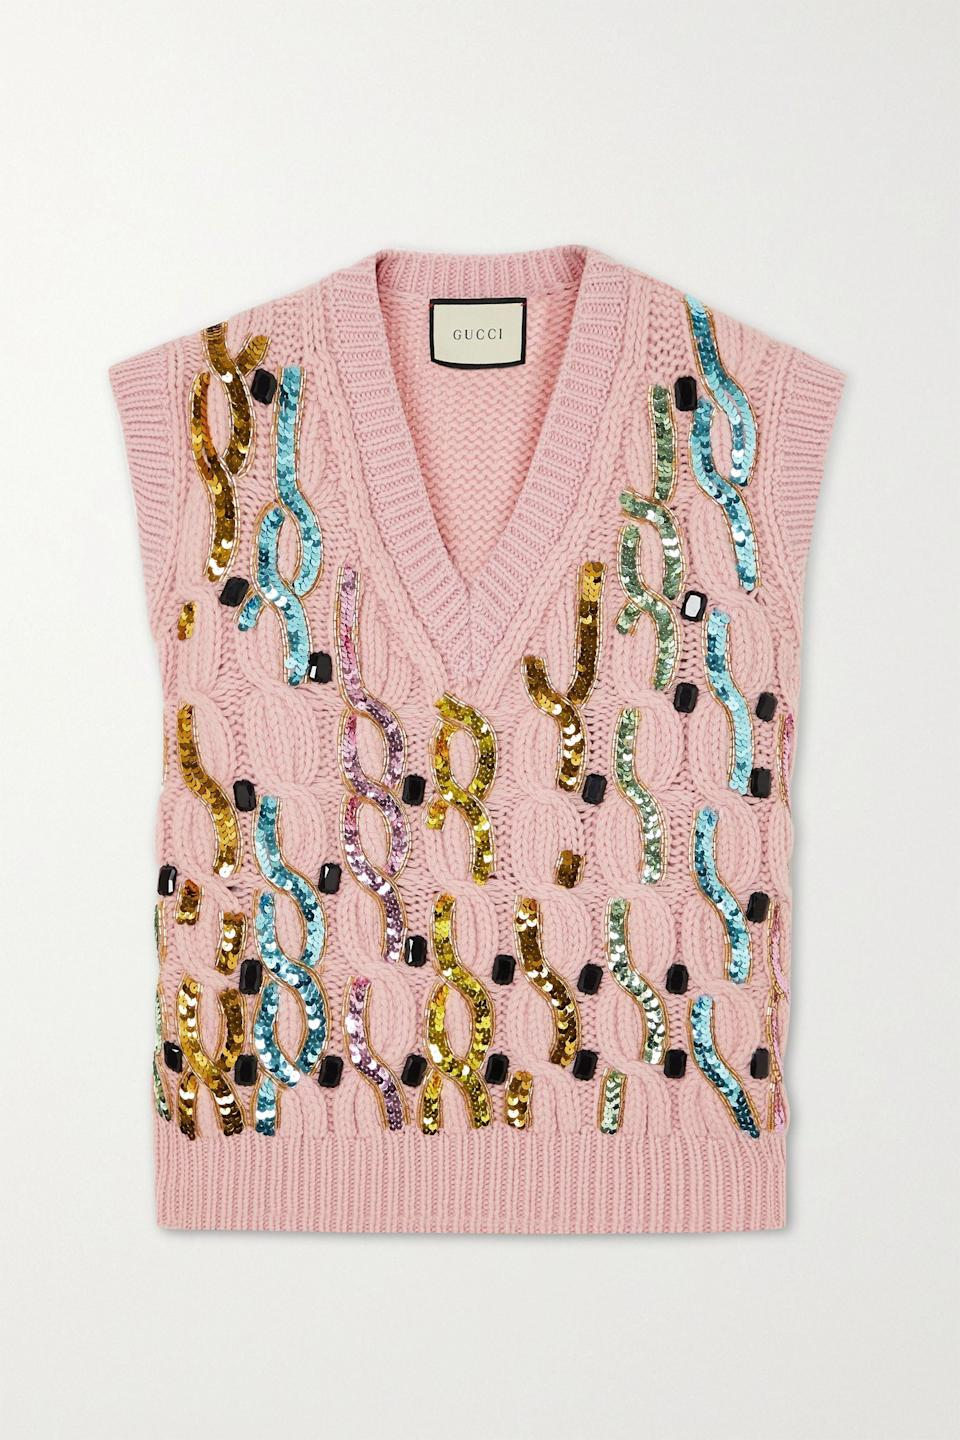 """<p><strong>Gucci</strong></p><p>net-a-porter.com</p><p><strong>$1800.00</strong></p><p><a href=""""https://go.redirectingat.com?id=74968X1596630&url=https%3A%2F%2Fwww.net-a-porter.com%2Fen-us%2Fshop%2Fproduct%2Fgucci%2Fembellished-cable-knit-wool-vest%2F1255387&sref=https%3A%2F%2Fwww.townandcountrymag.com%2Fstyle%2Ffashion-trends%2Fg34521550%2Fbest-sweater-vests%2F"""" rel=""""nofollow noopener"""" target=""""_blank"""" data-ylk=""""slk:Shop Now"""" class=""""link rapid-noclick-resp"""">Shop Now</a></p>"""